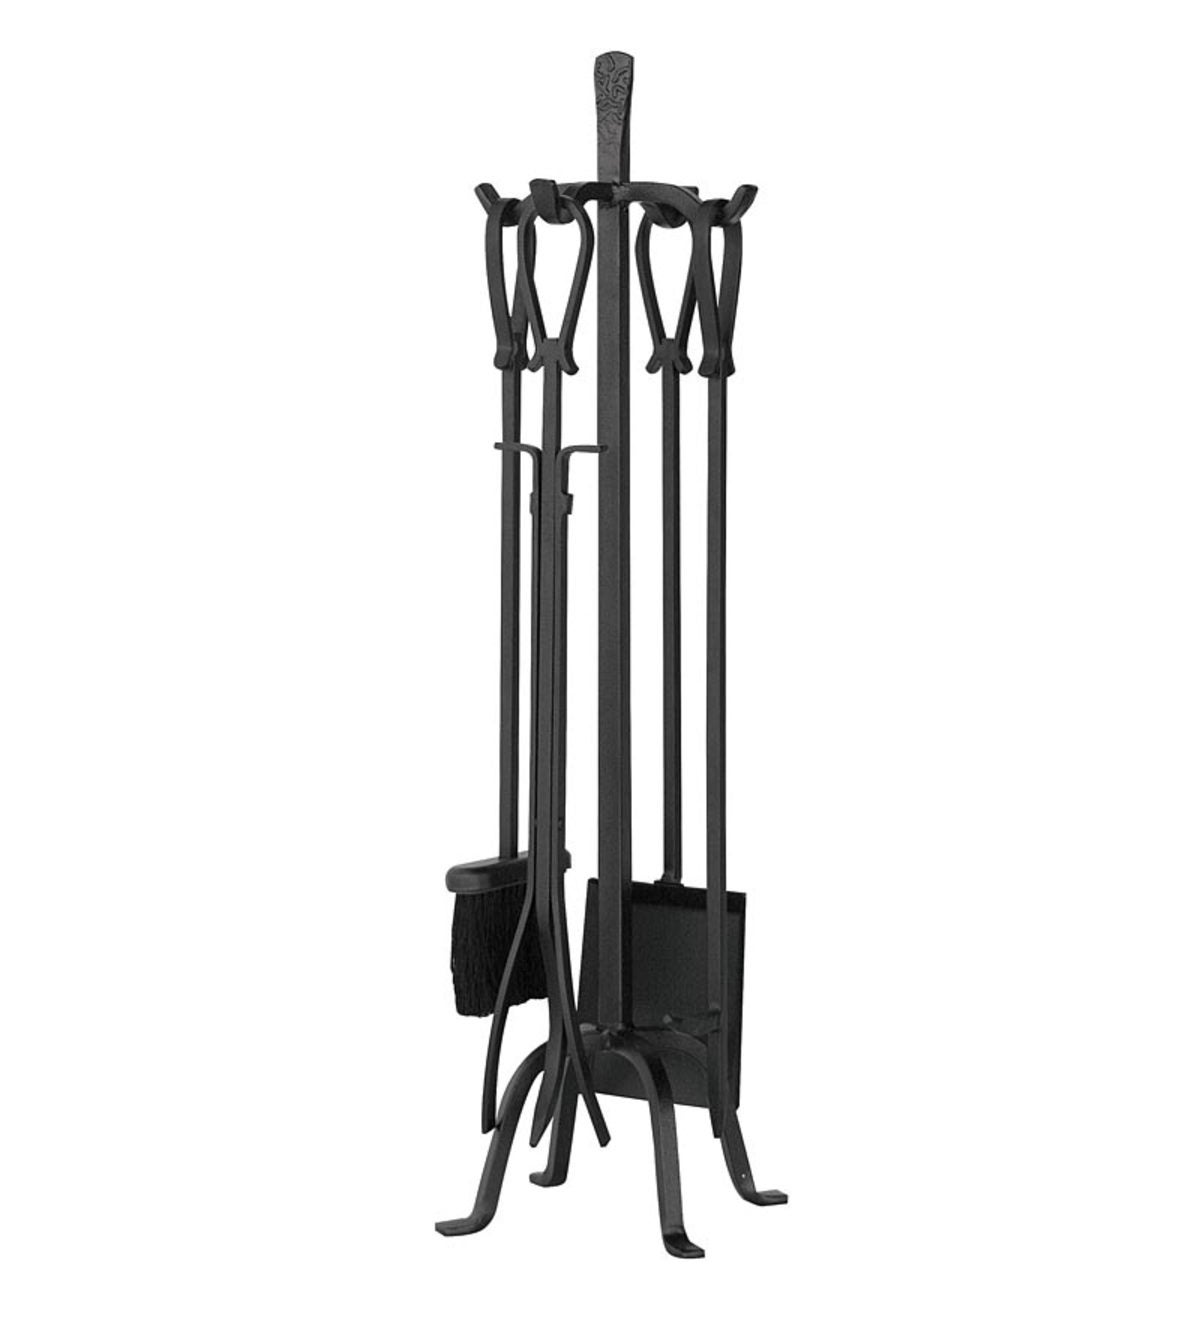 Olde World 5-Piece Fireplace Tool Set with Loop Handles - Iron